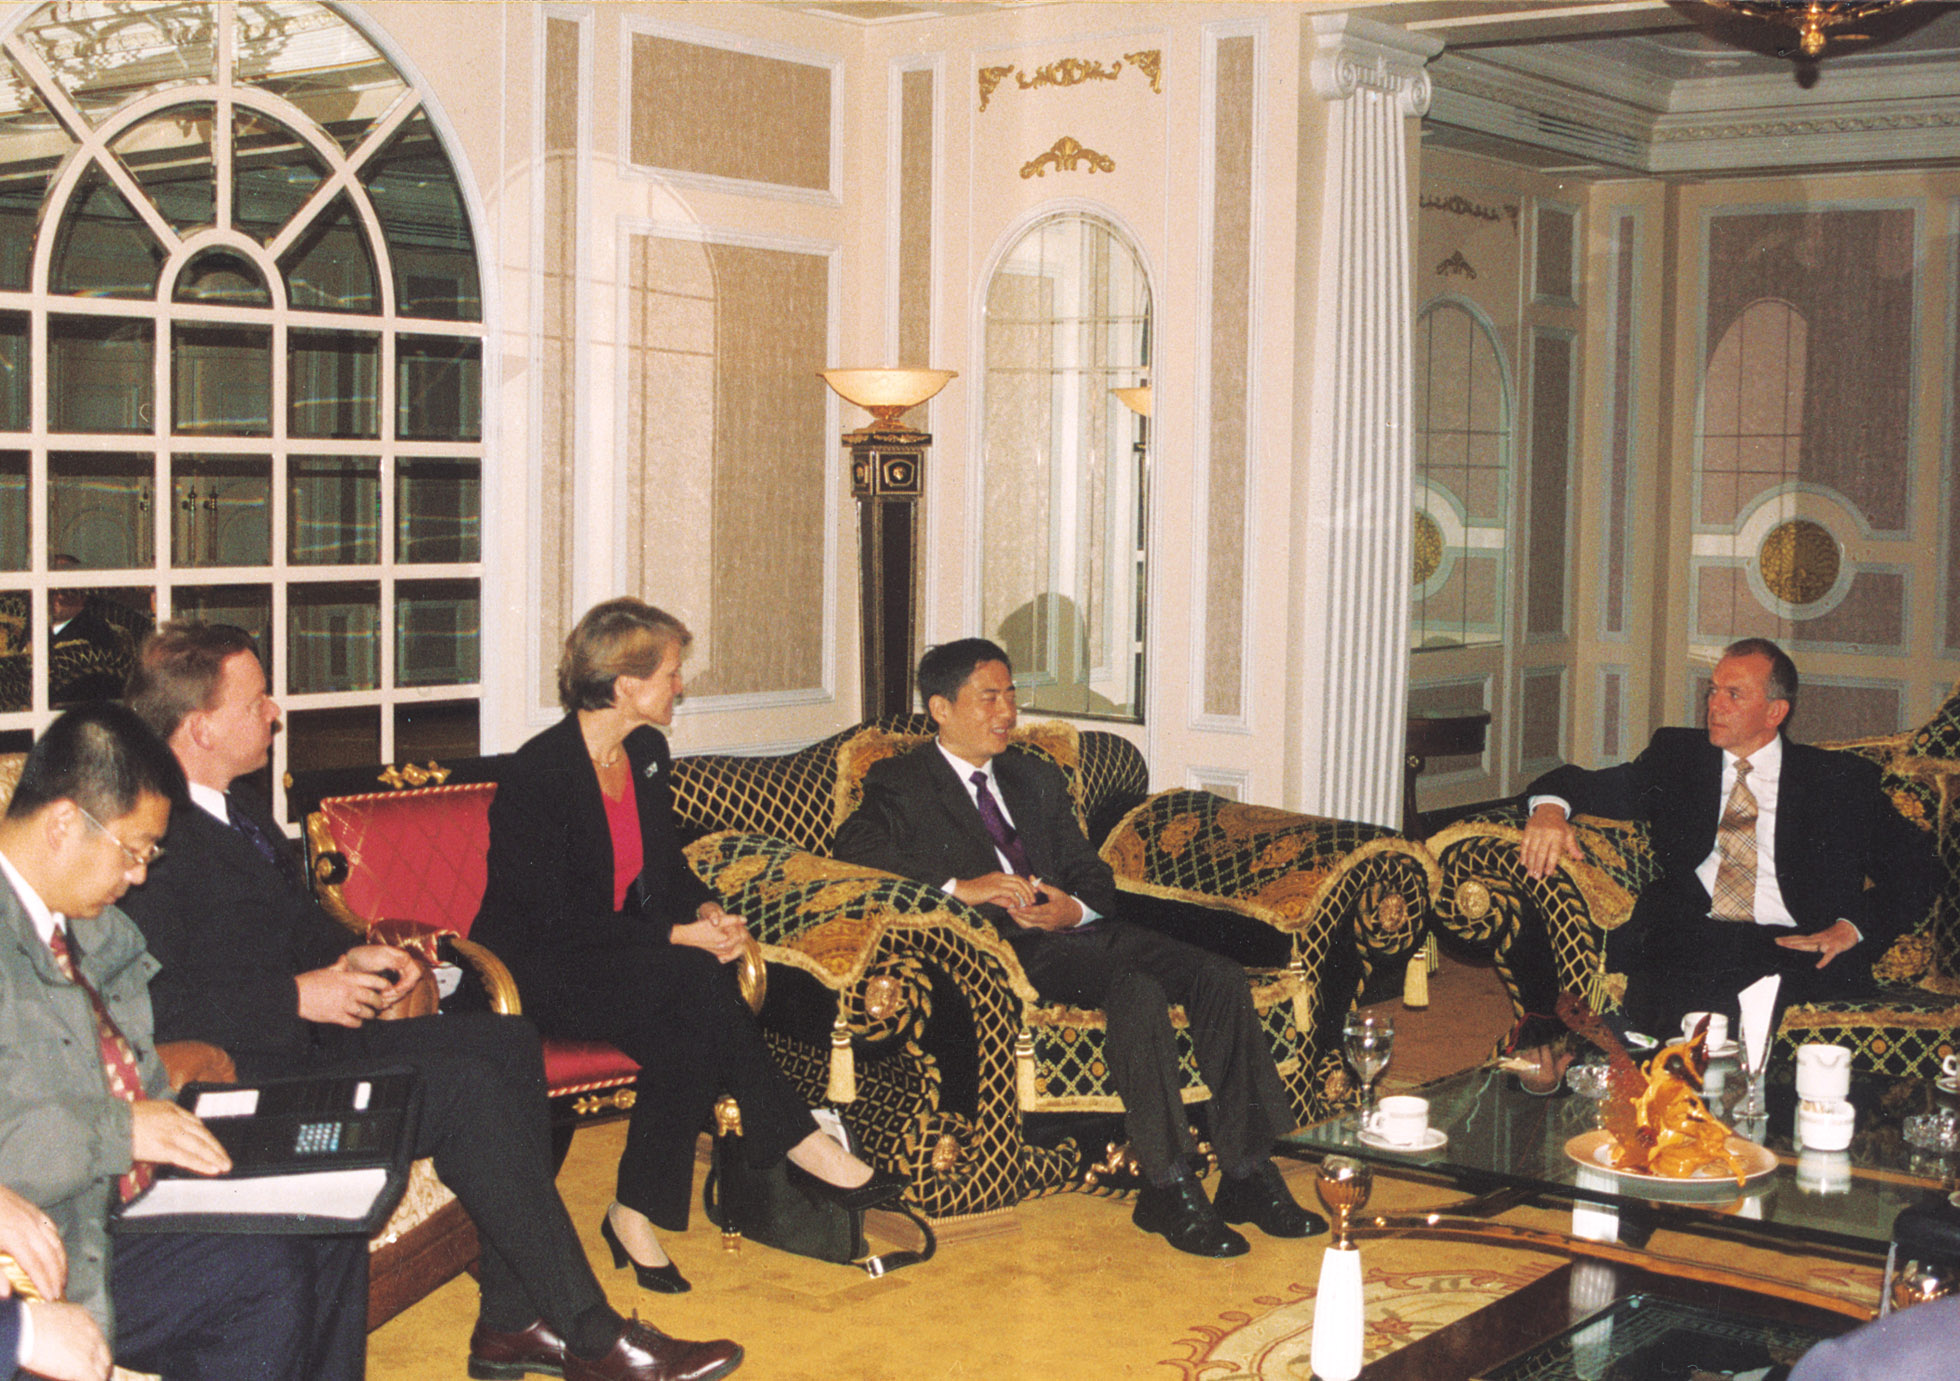 President Bin Chen meeting with the British Prime Minister's assistant, Jeff Moore